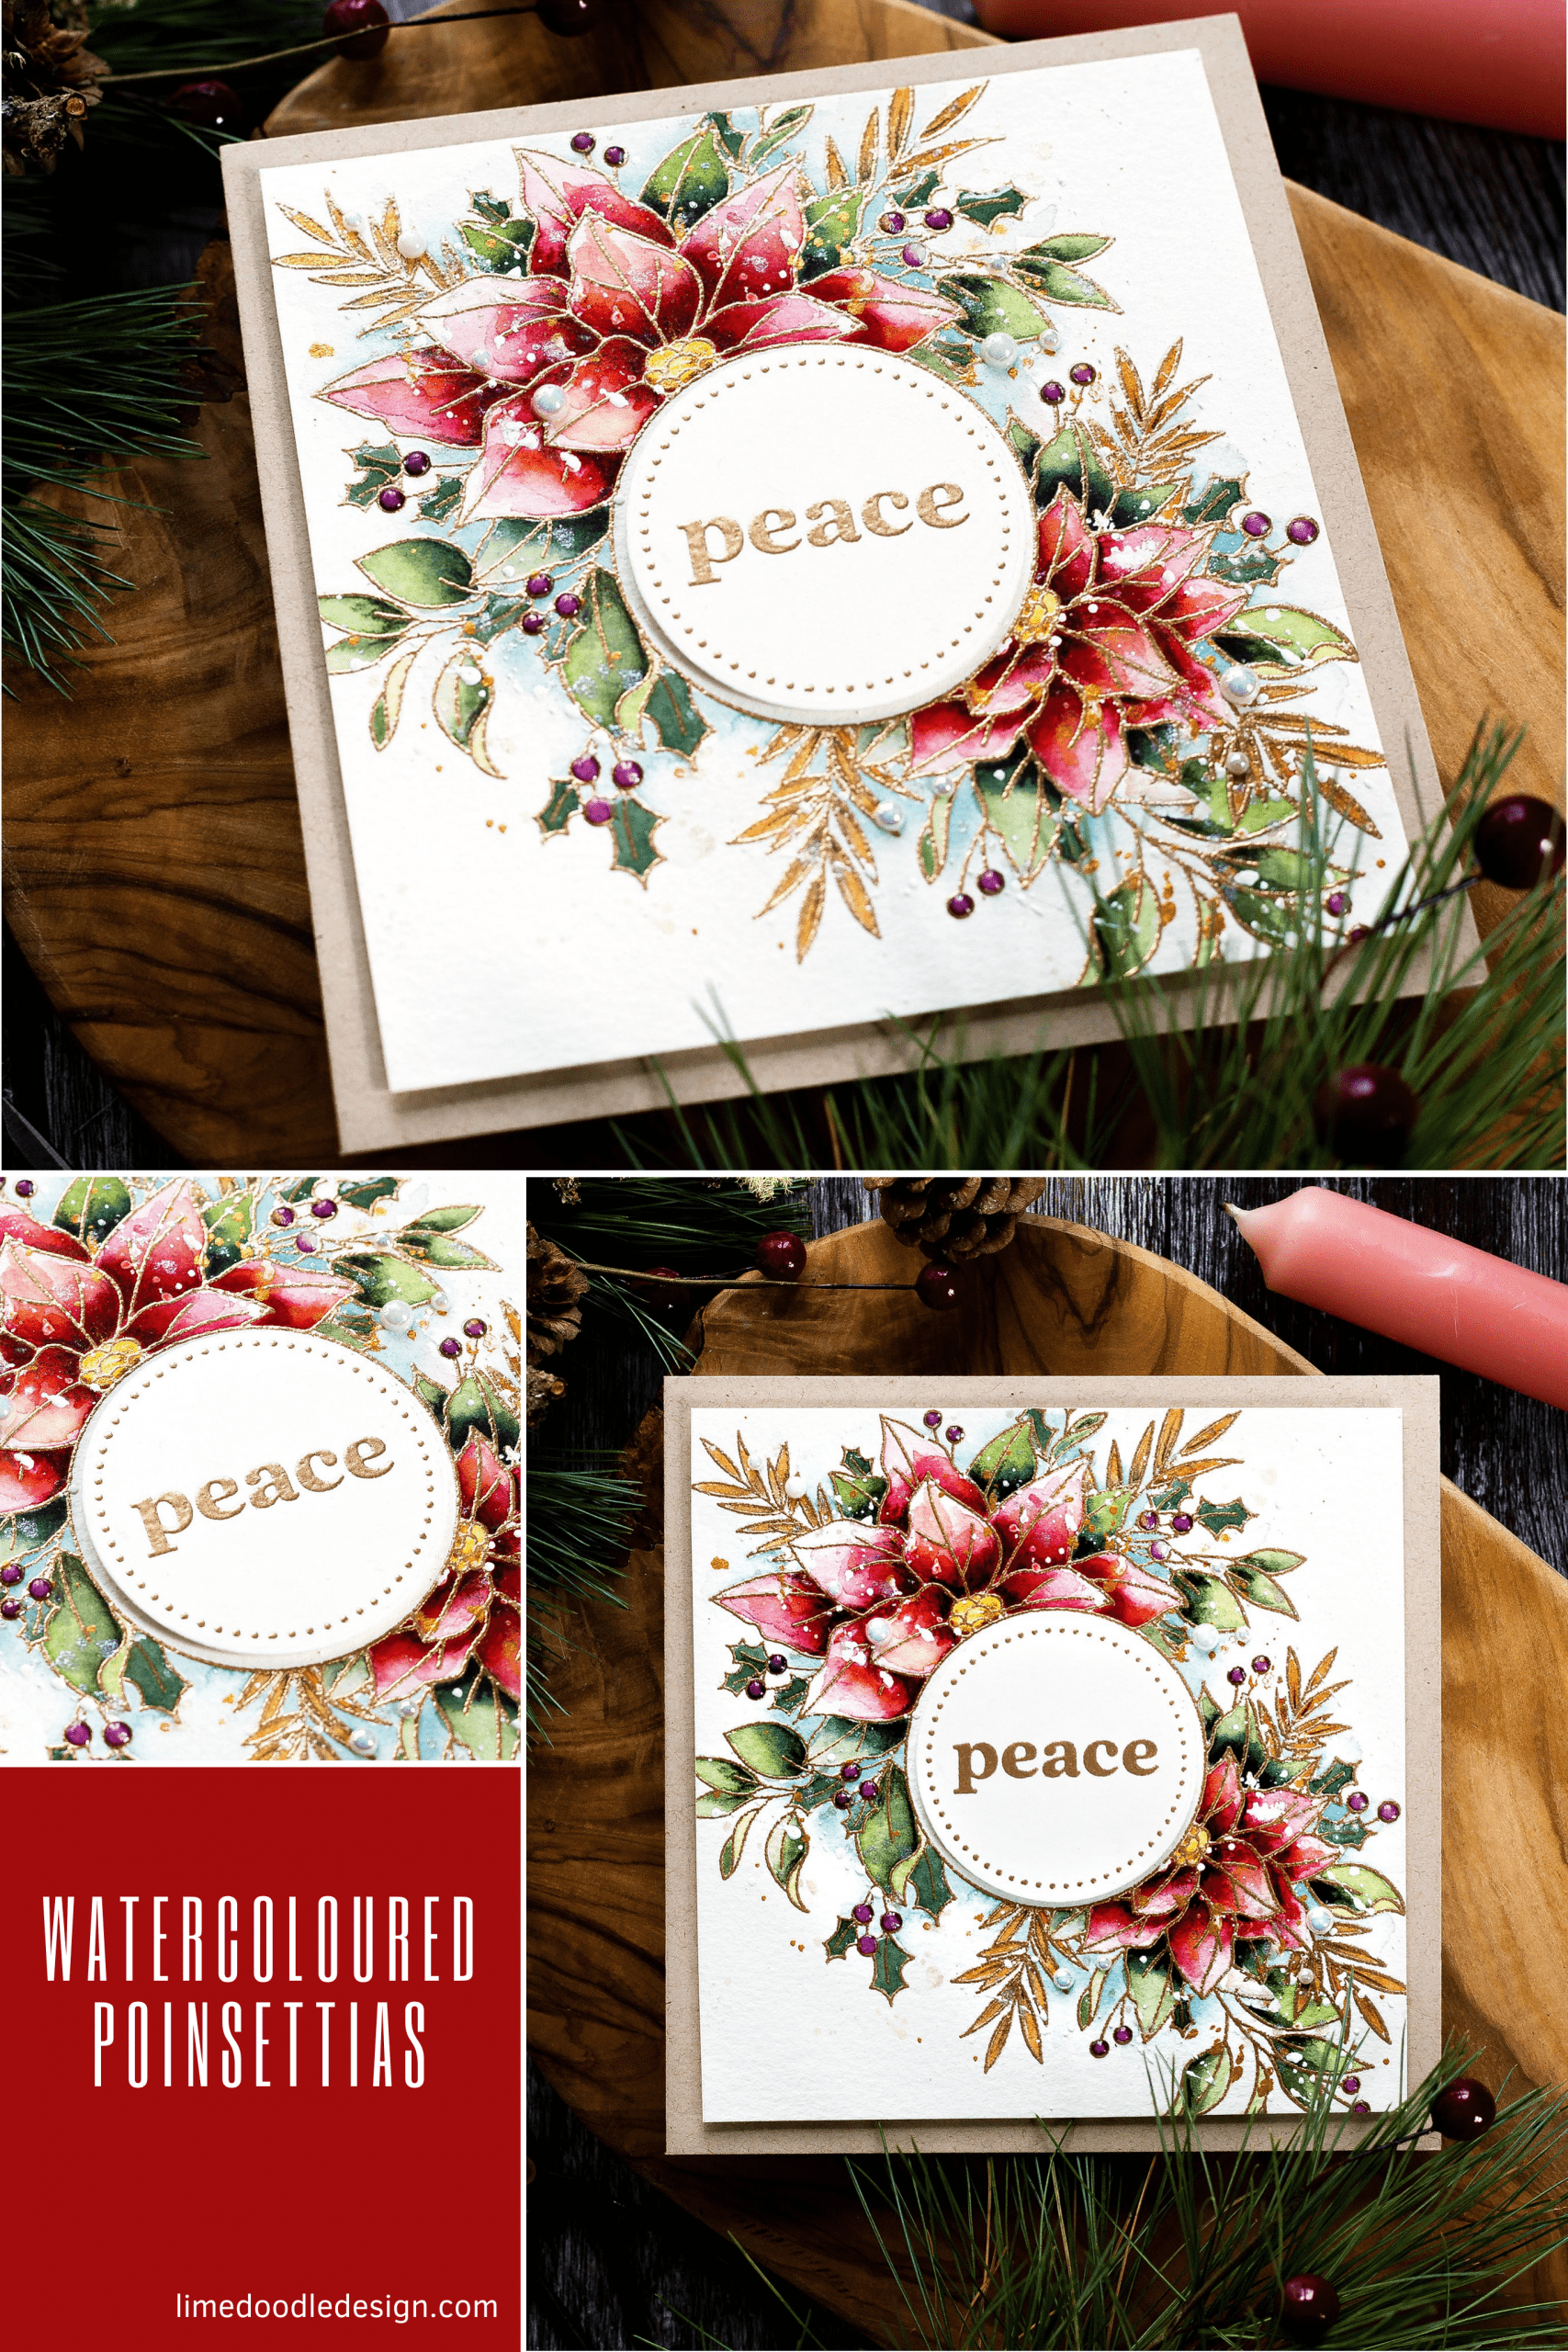 Watercoloured Christmas card tutorial. Handmade card by Debby Hughes using supplies from Simon Says Stamp #watercolor #homemade